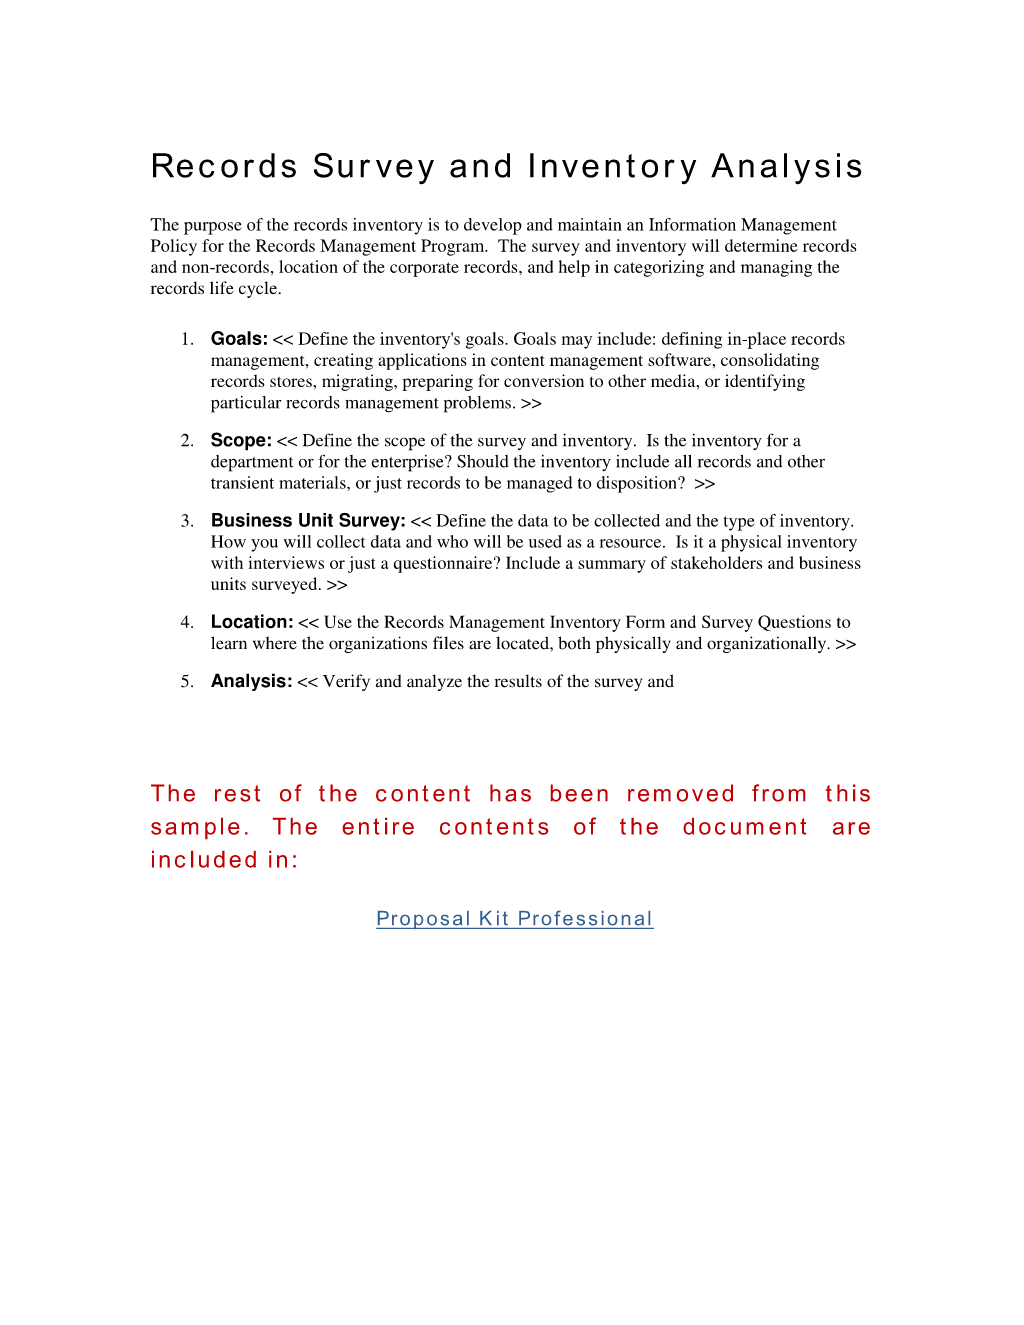 How To Write Your Own Records Survey And Inventory